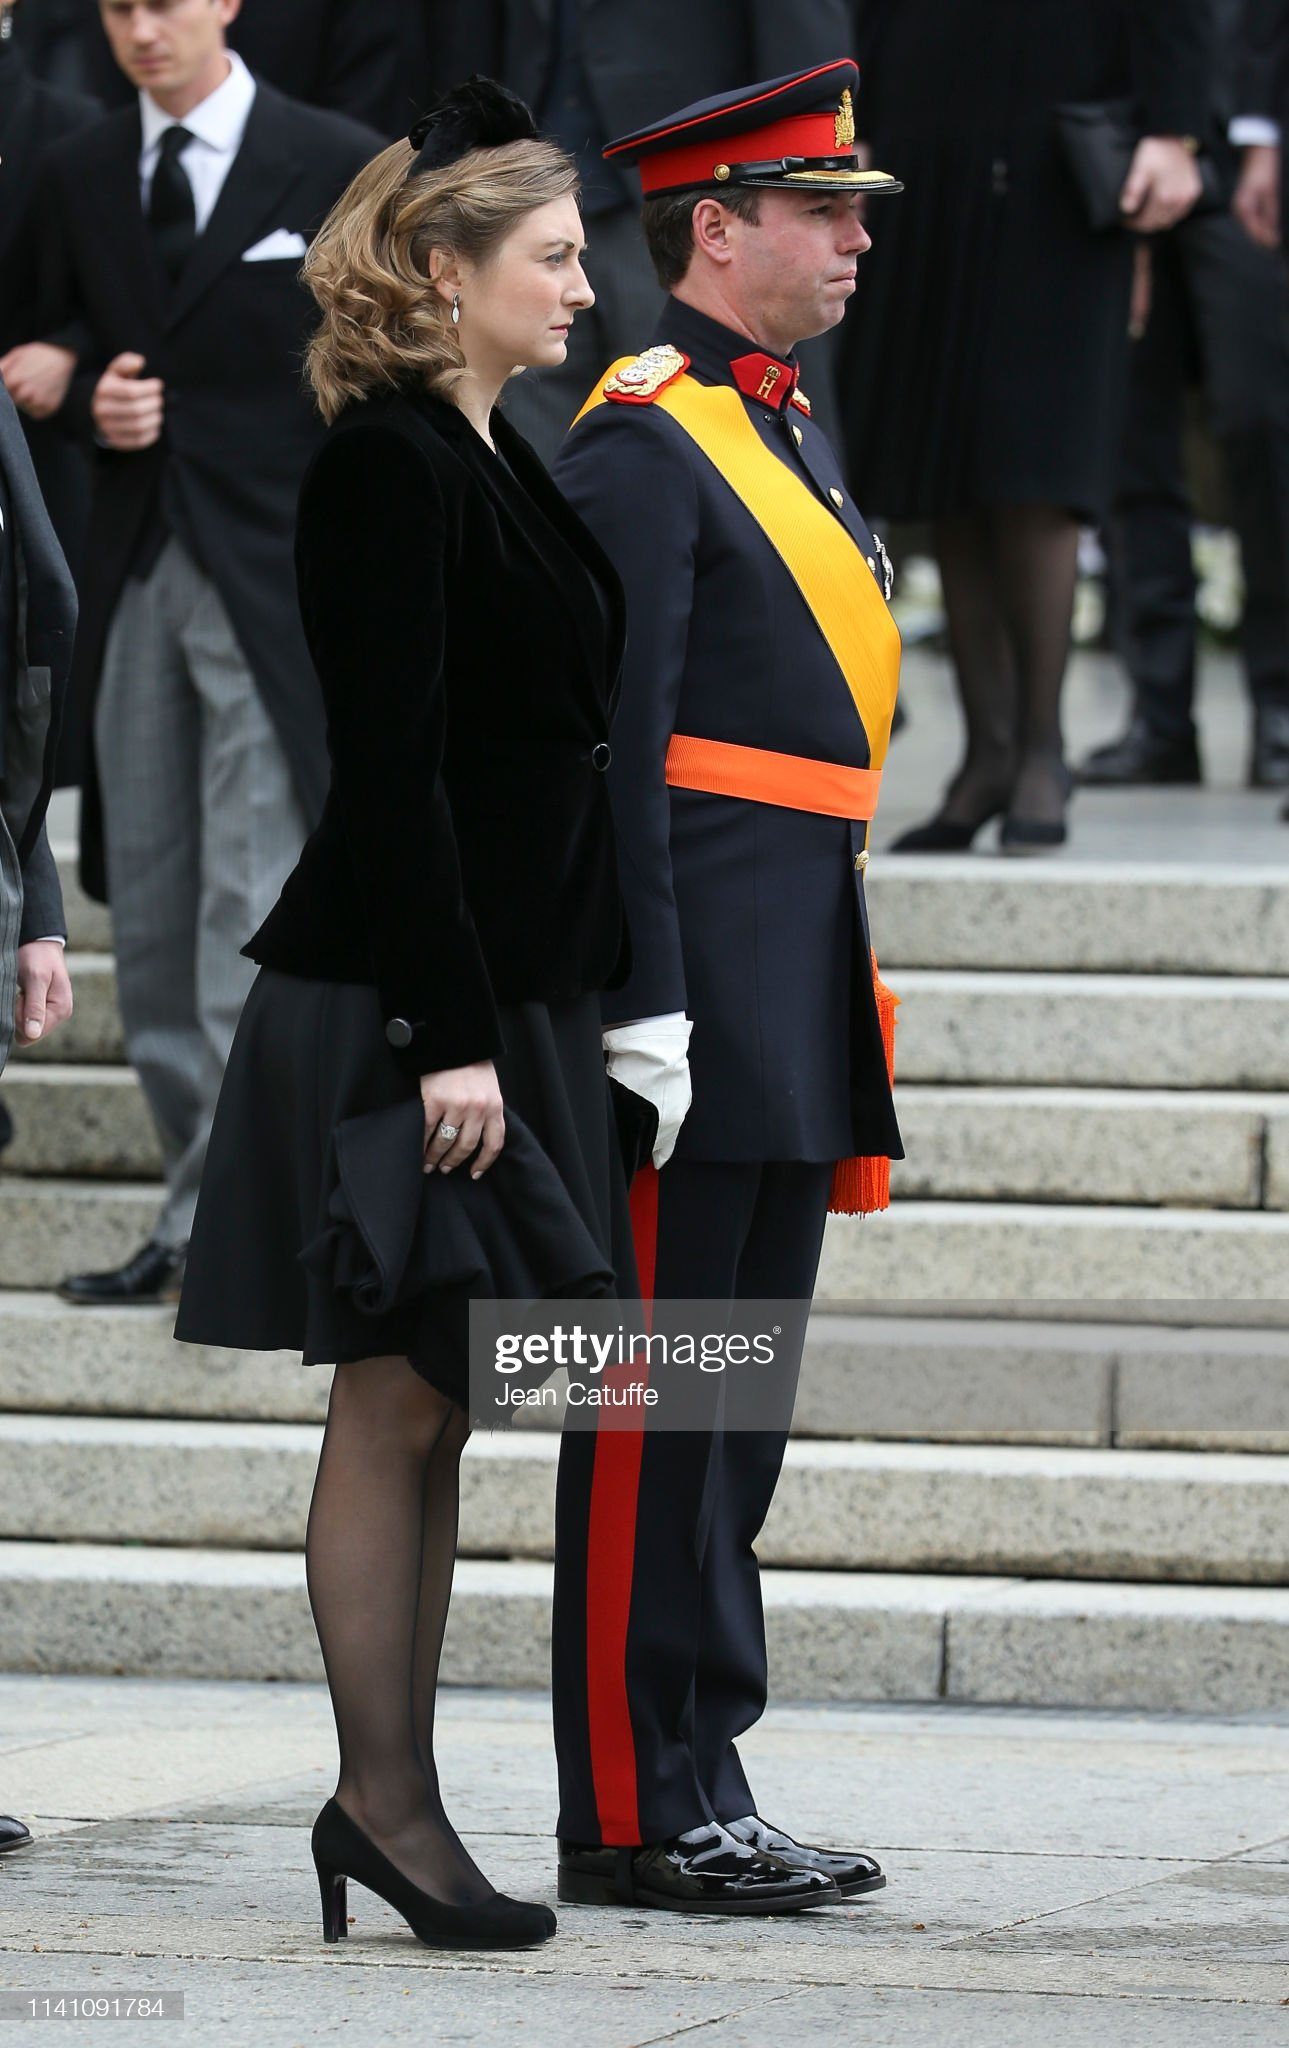 https://media.gettyimages.com/photos/guillaume-hereditary-grand-duke-of-luxembourg-and-his-wife-stephanie-picture-id1141091784?s=2048x2048